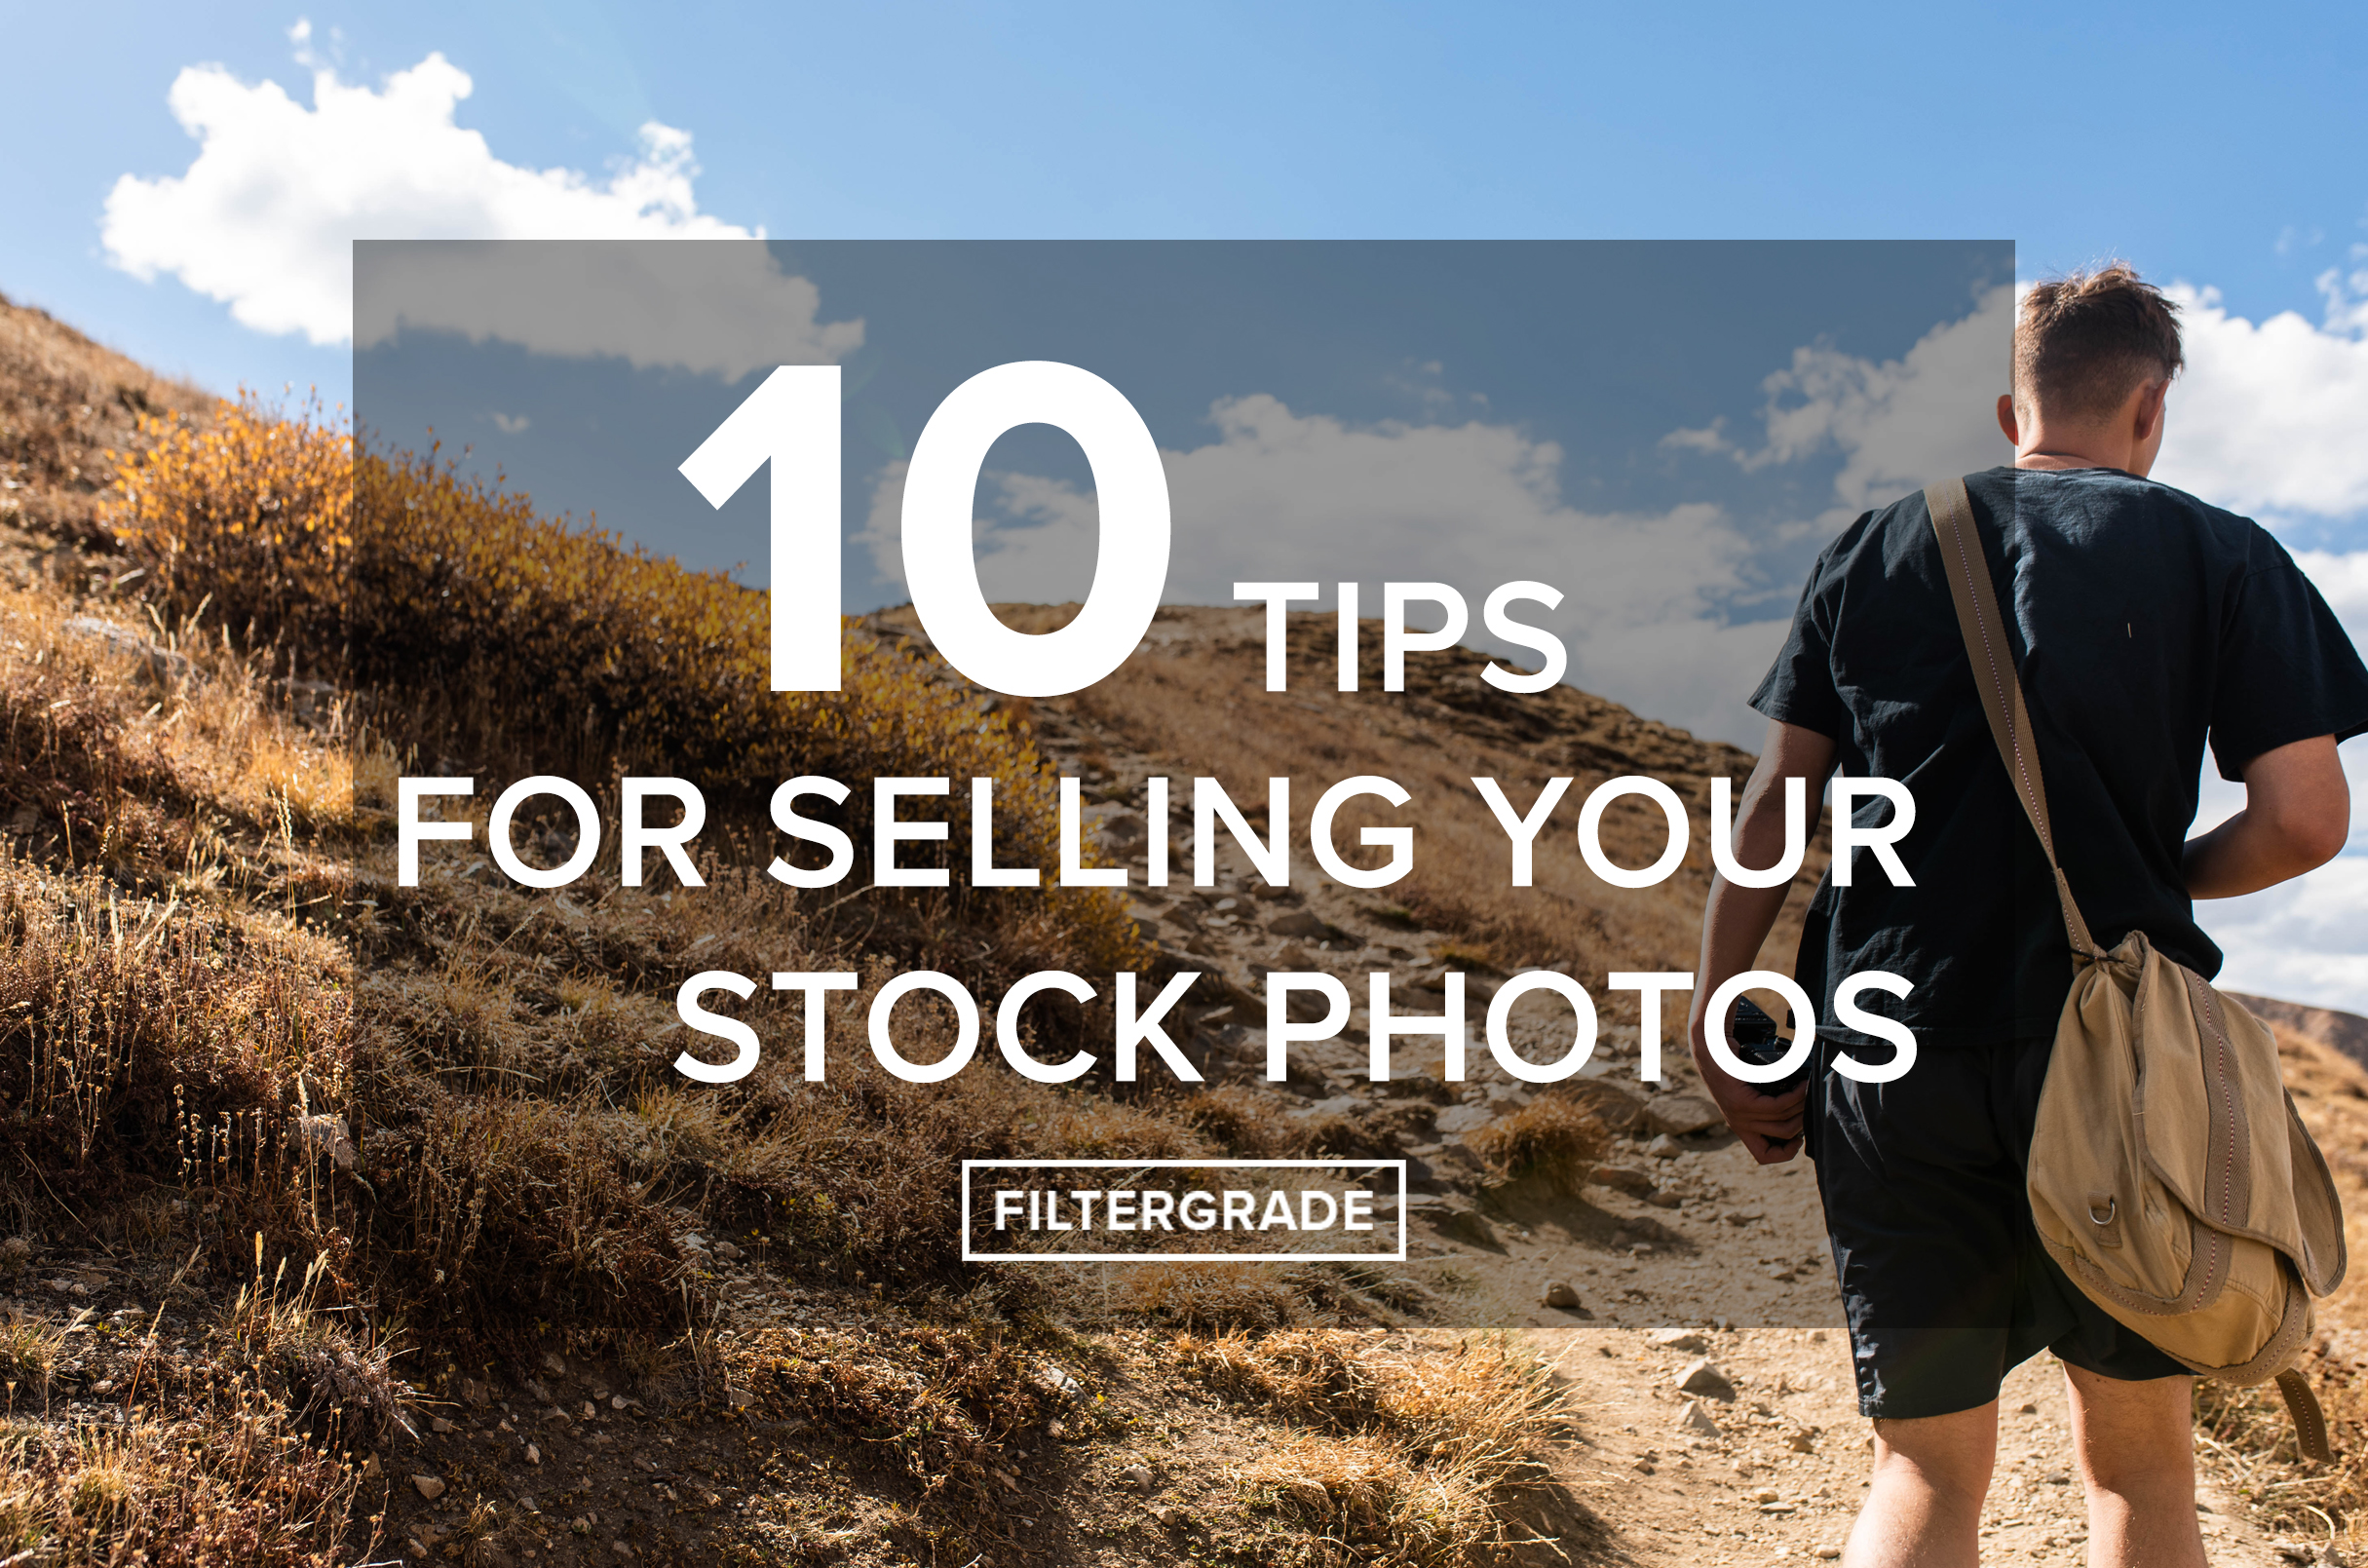 10 Tips for Selling Your Stock Photos - FilterGrade